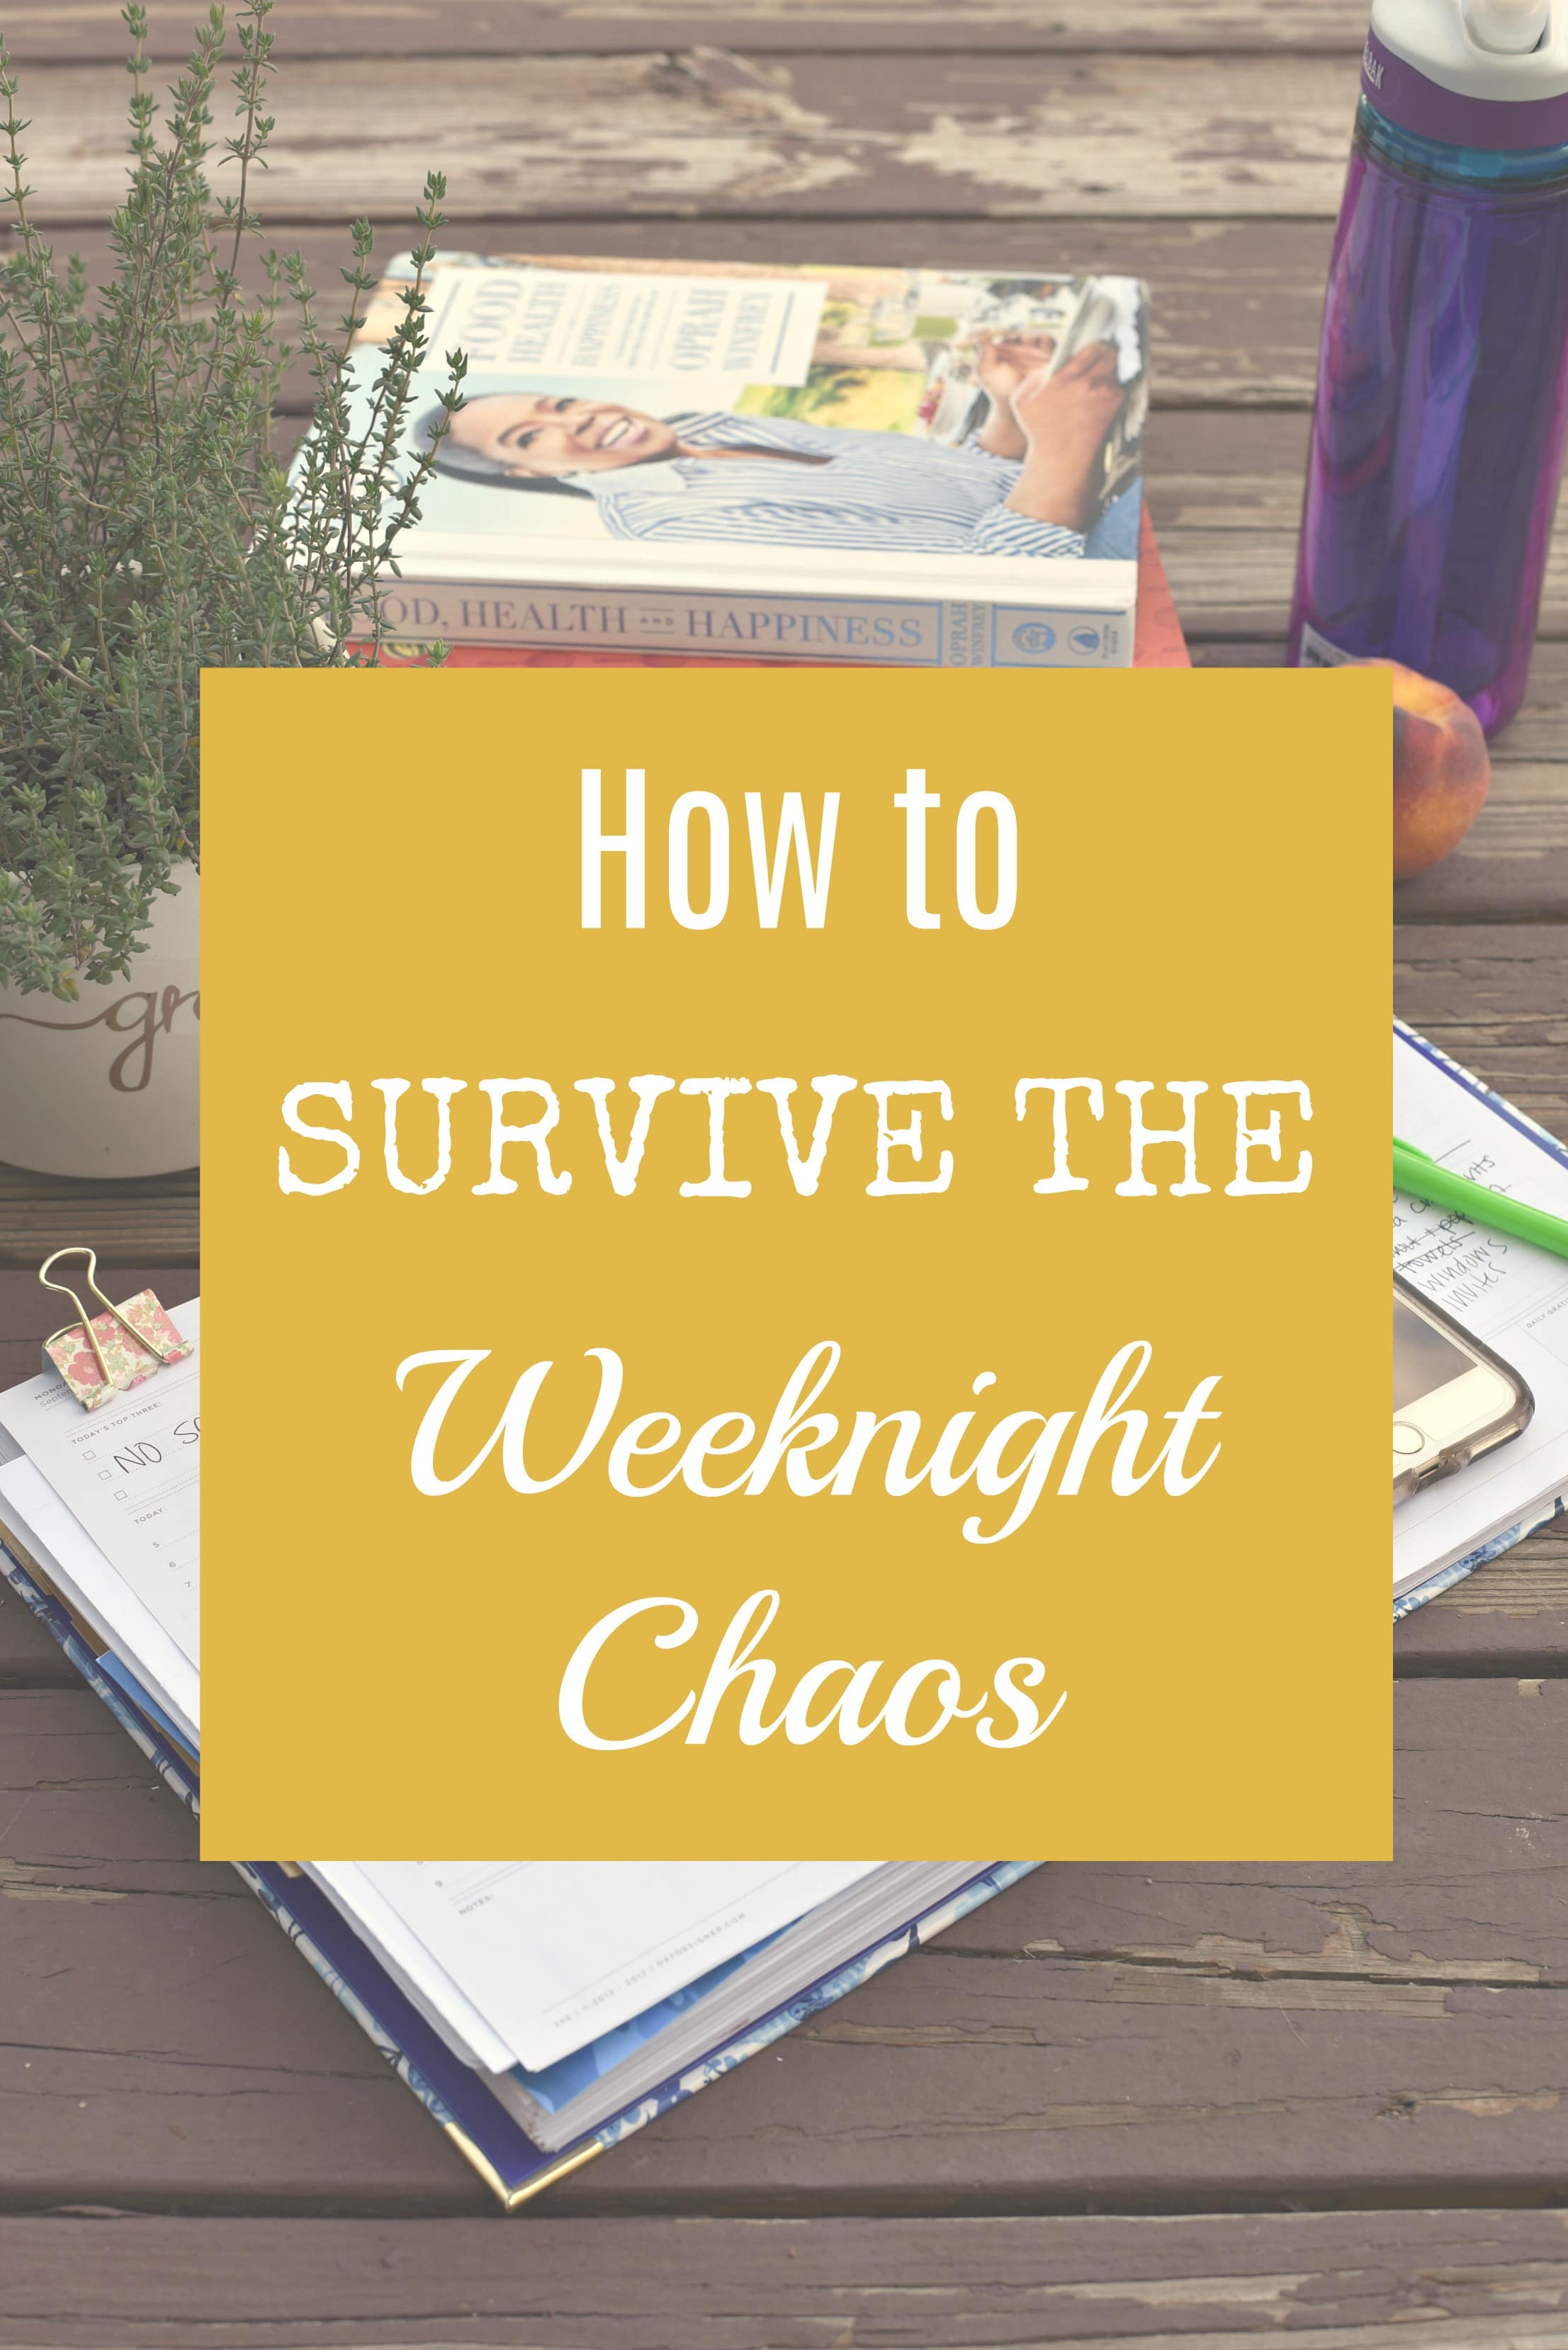 How to survive weeknight chaos